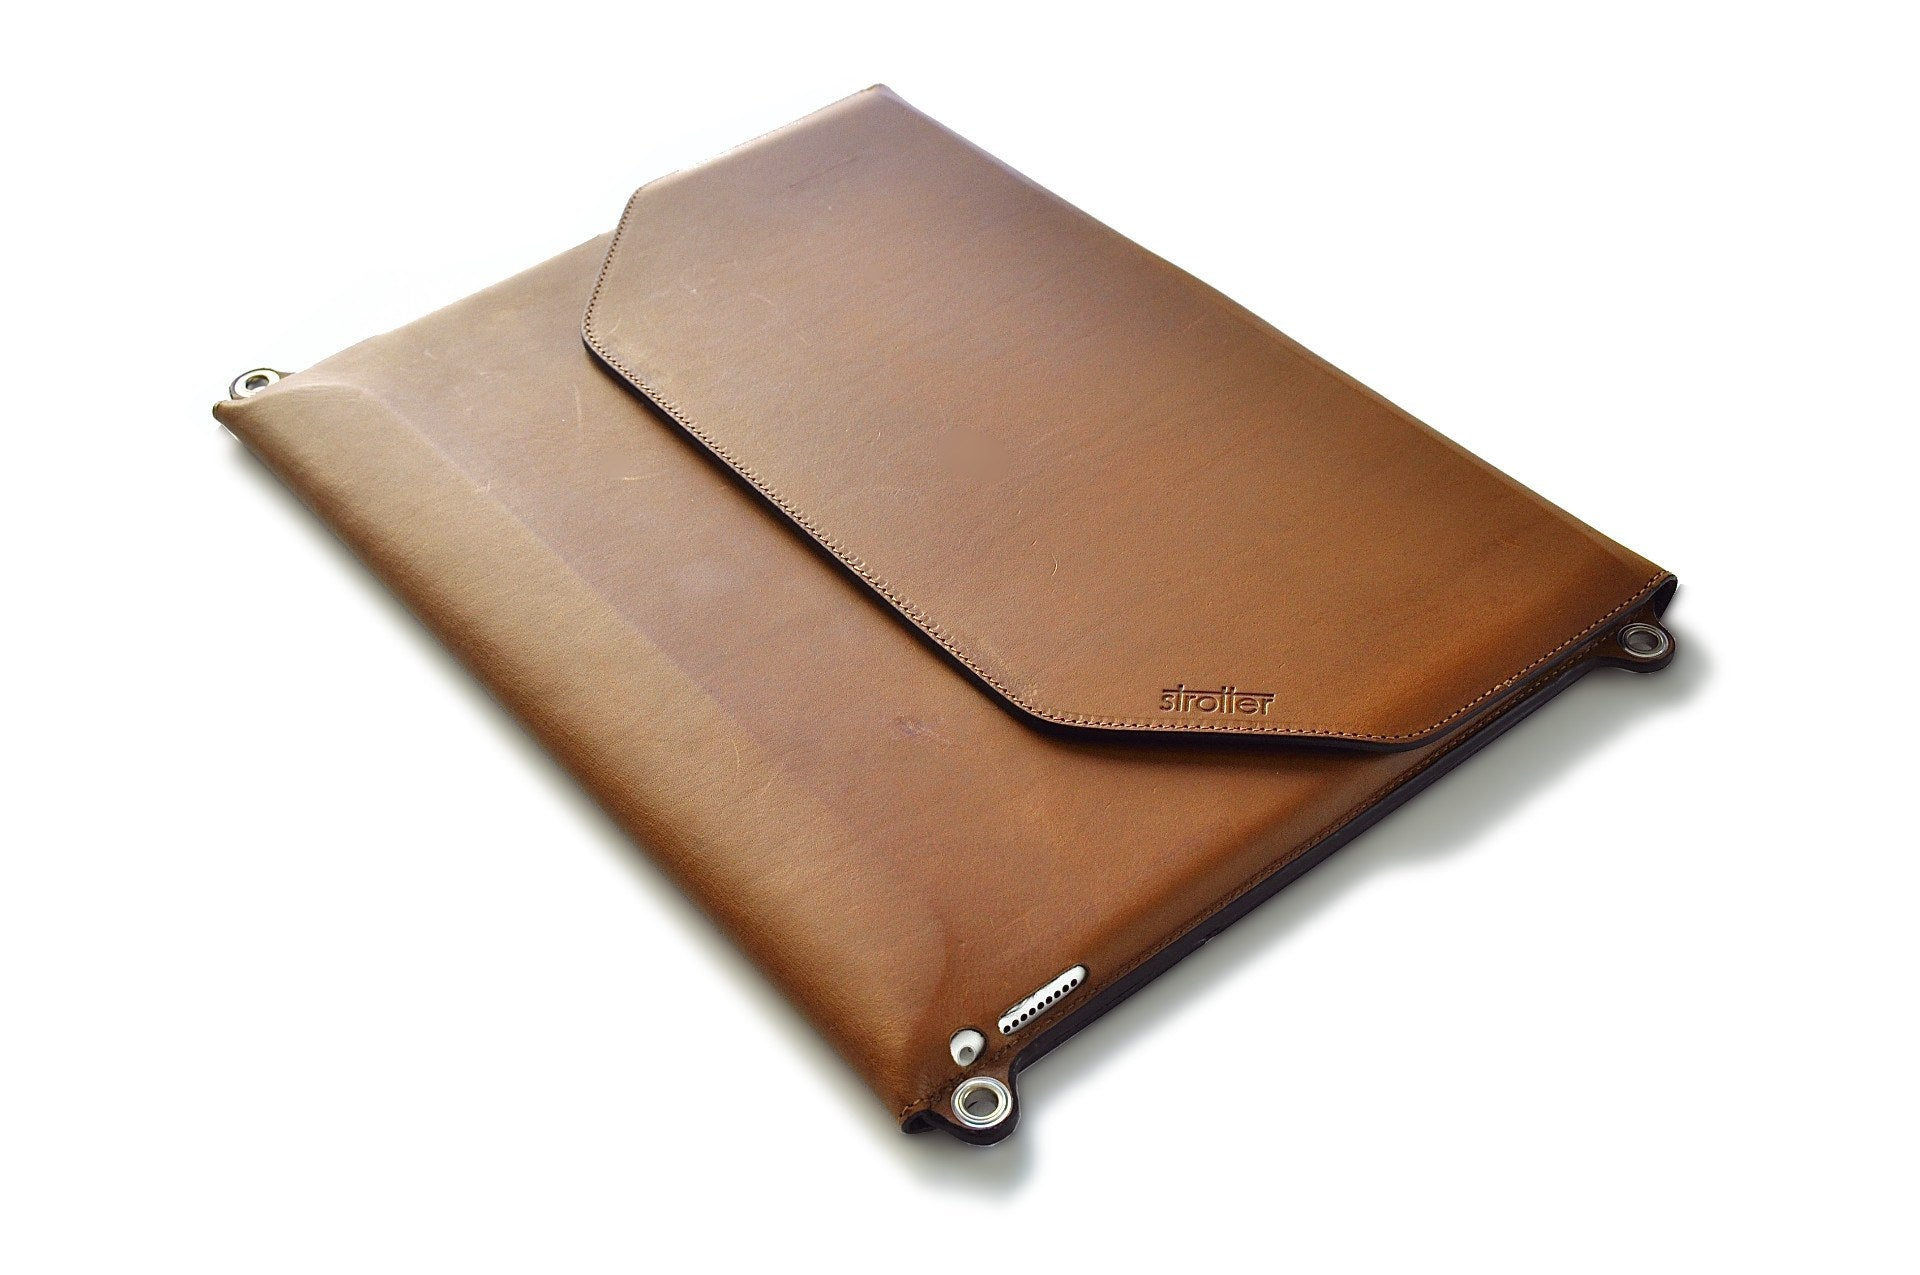 Hands-free case for iPad Across